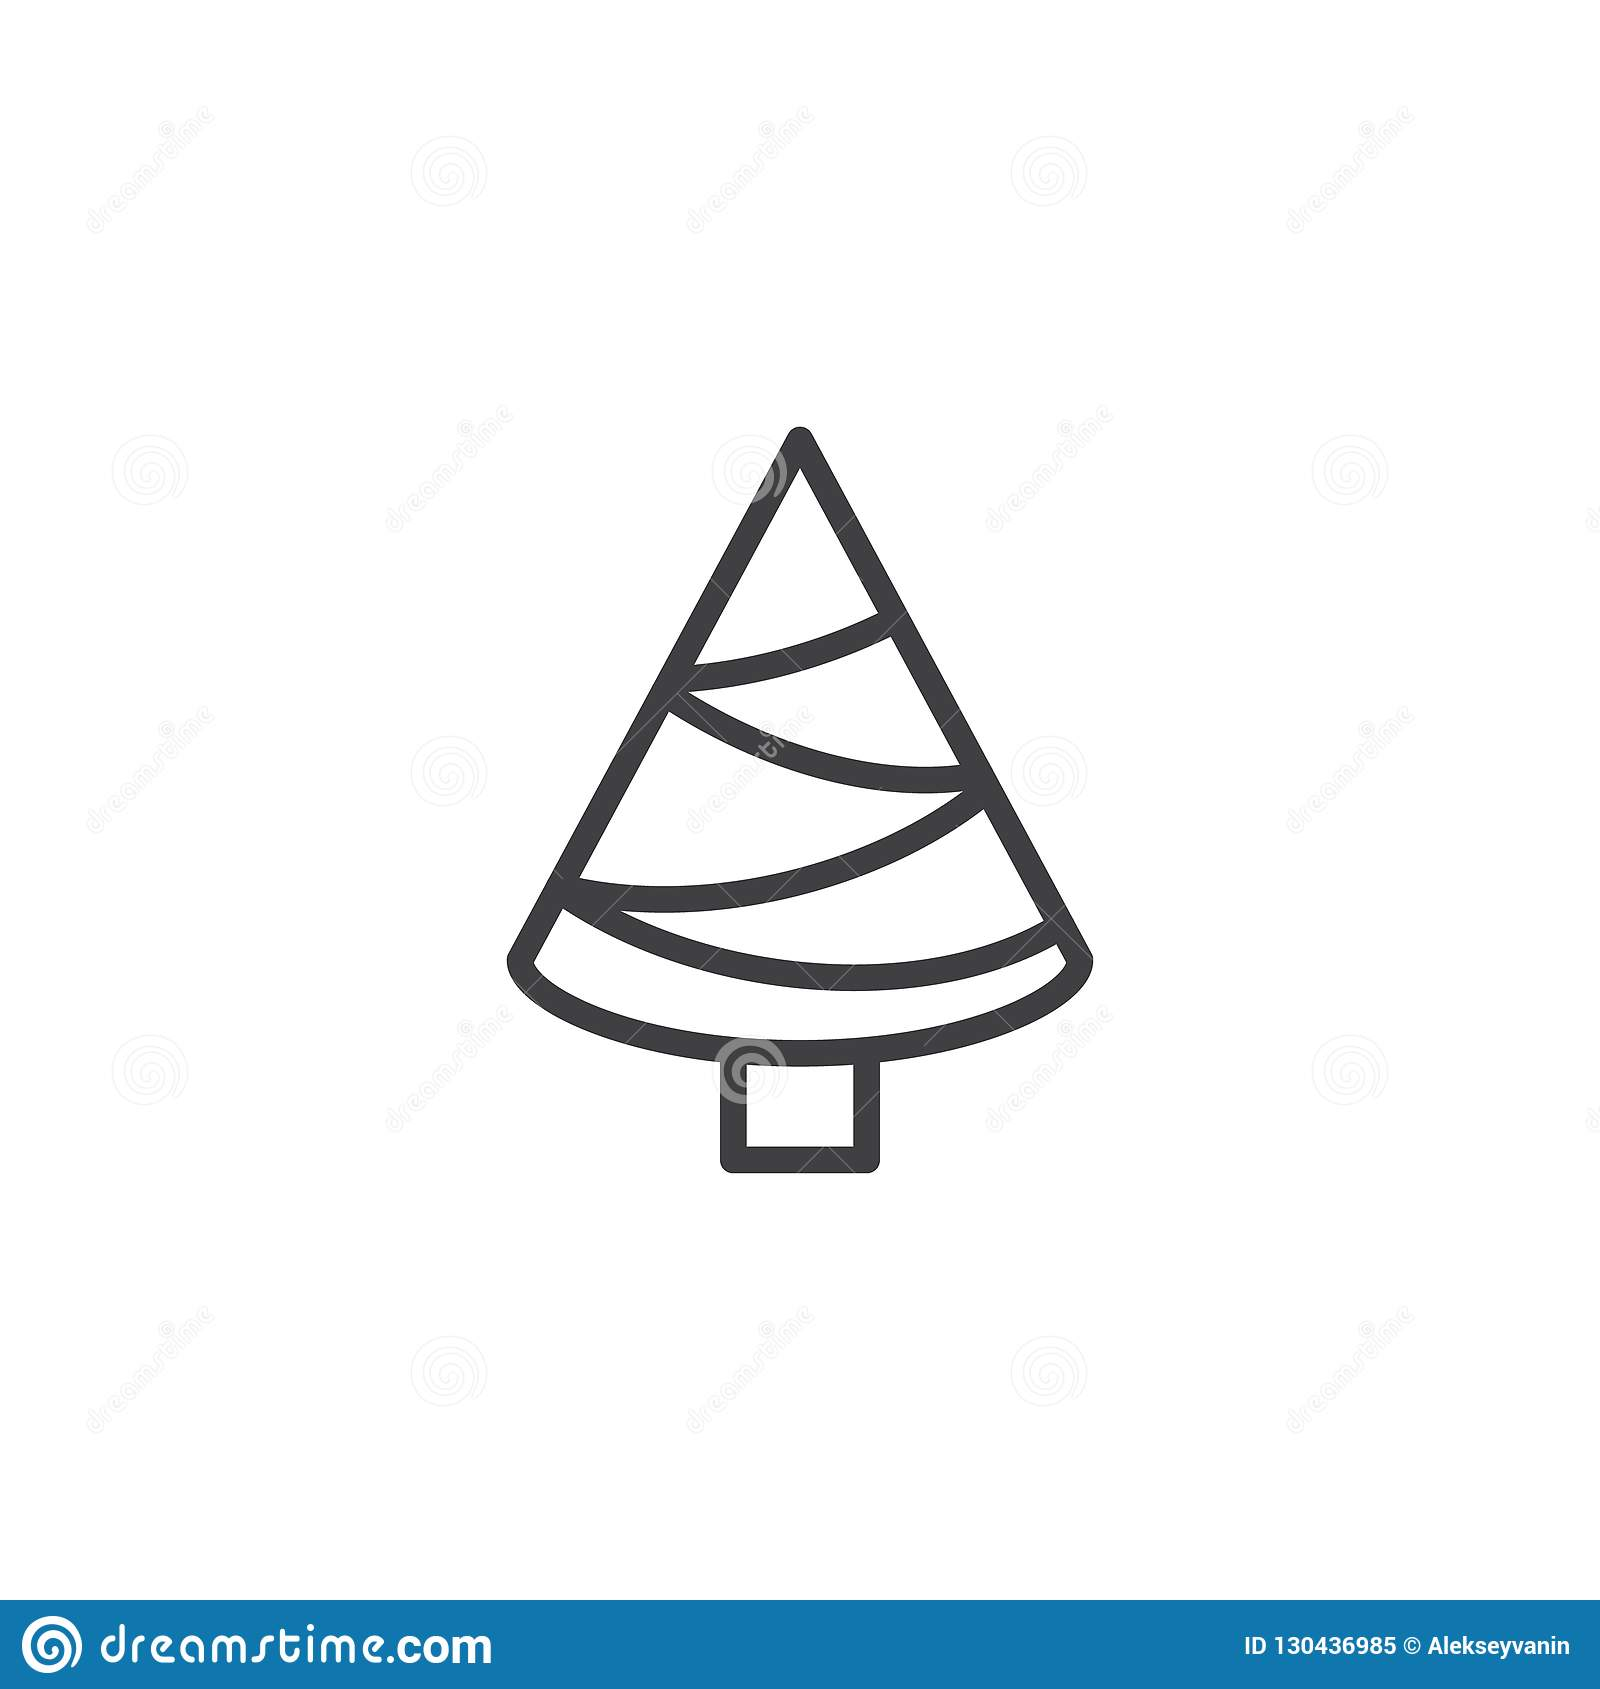 Christmas Tree Outline Icon Stock Vector Illustration Of Single Linear 130436985